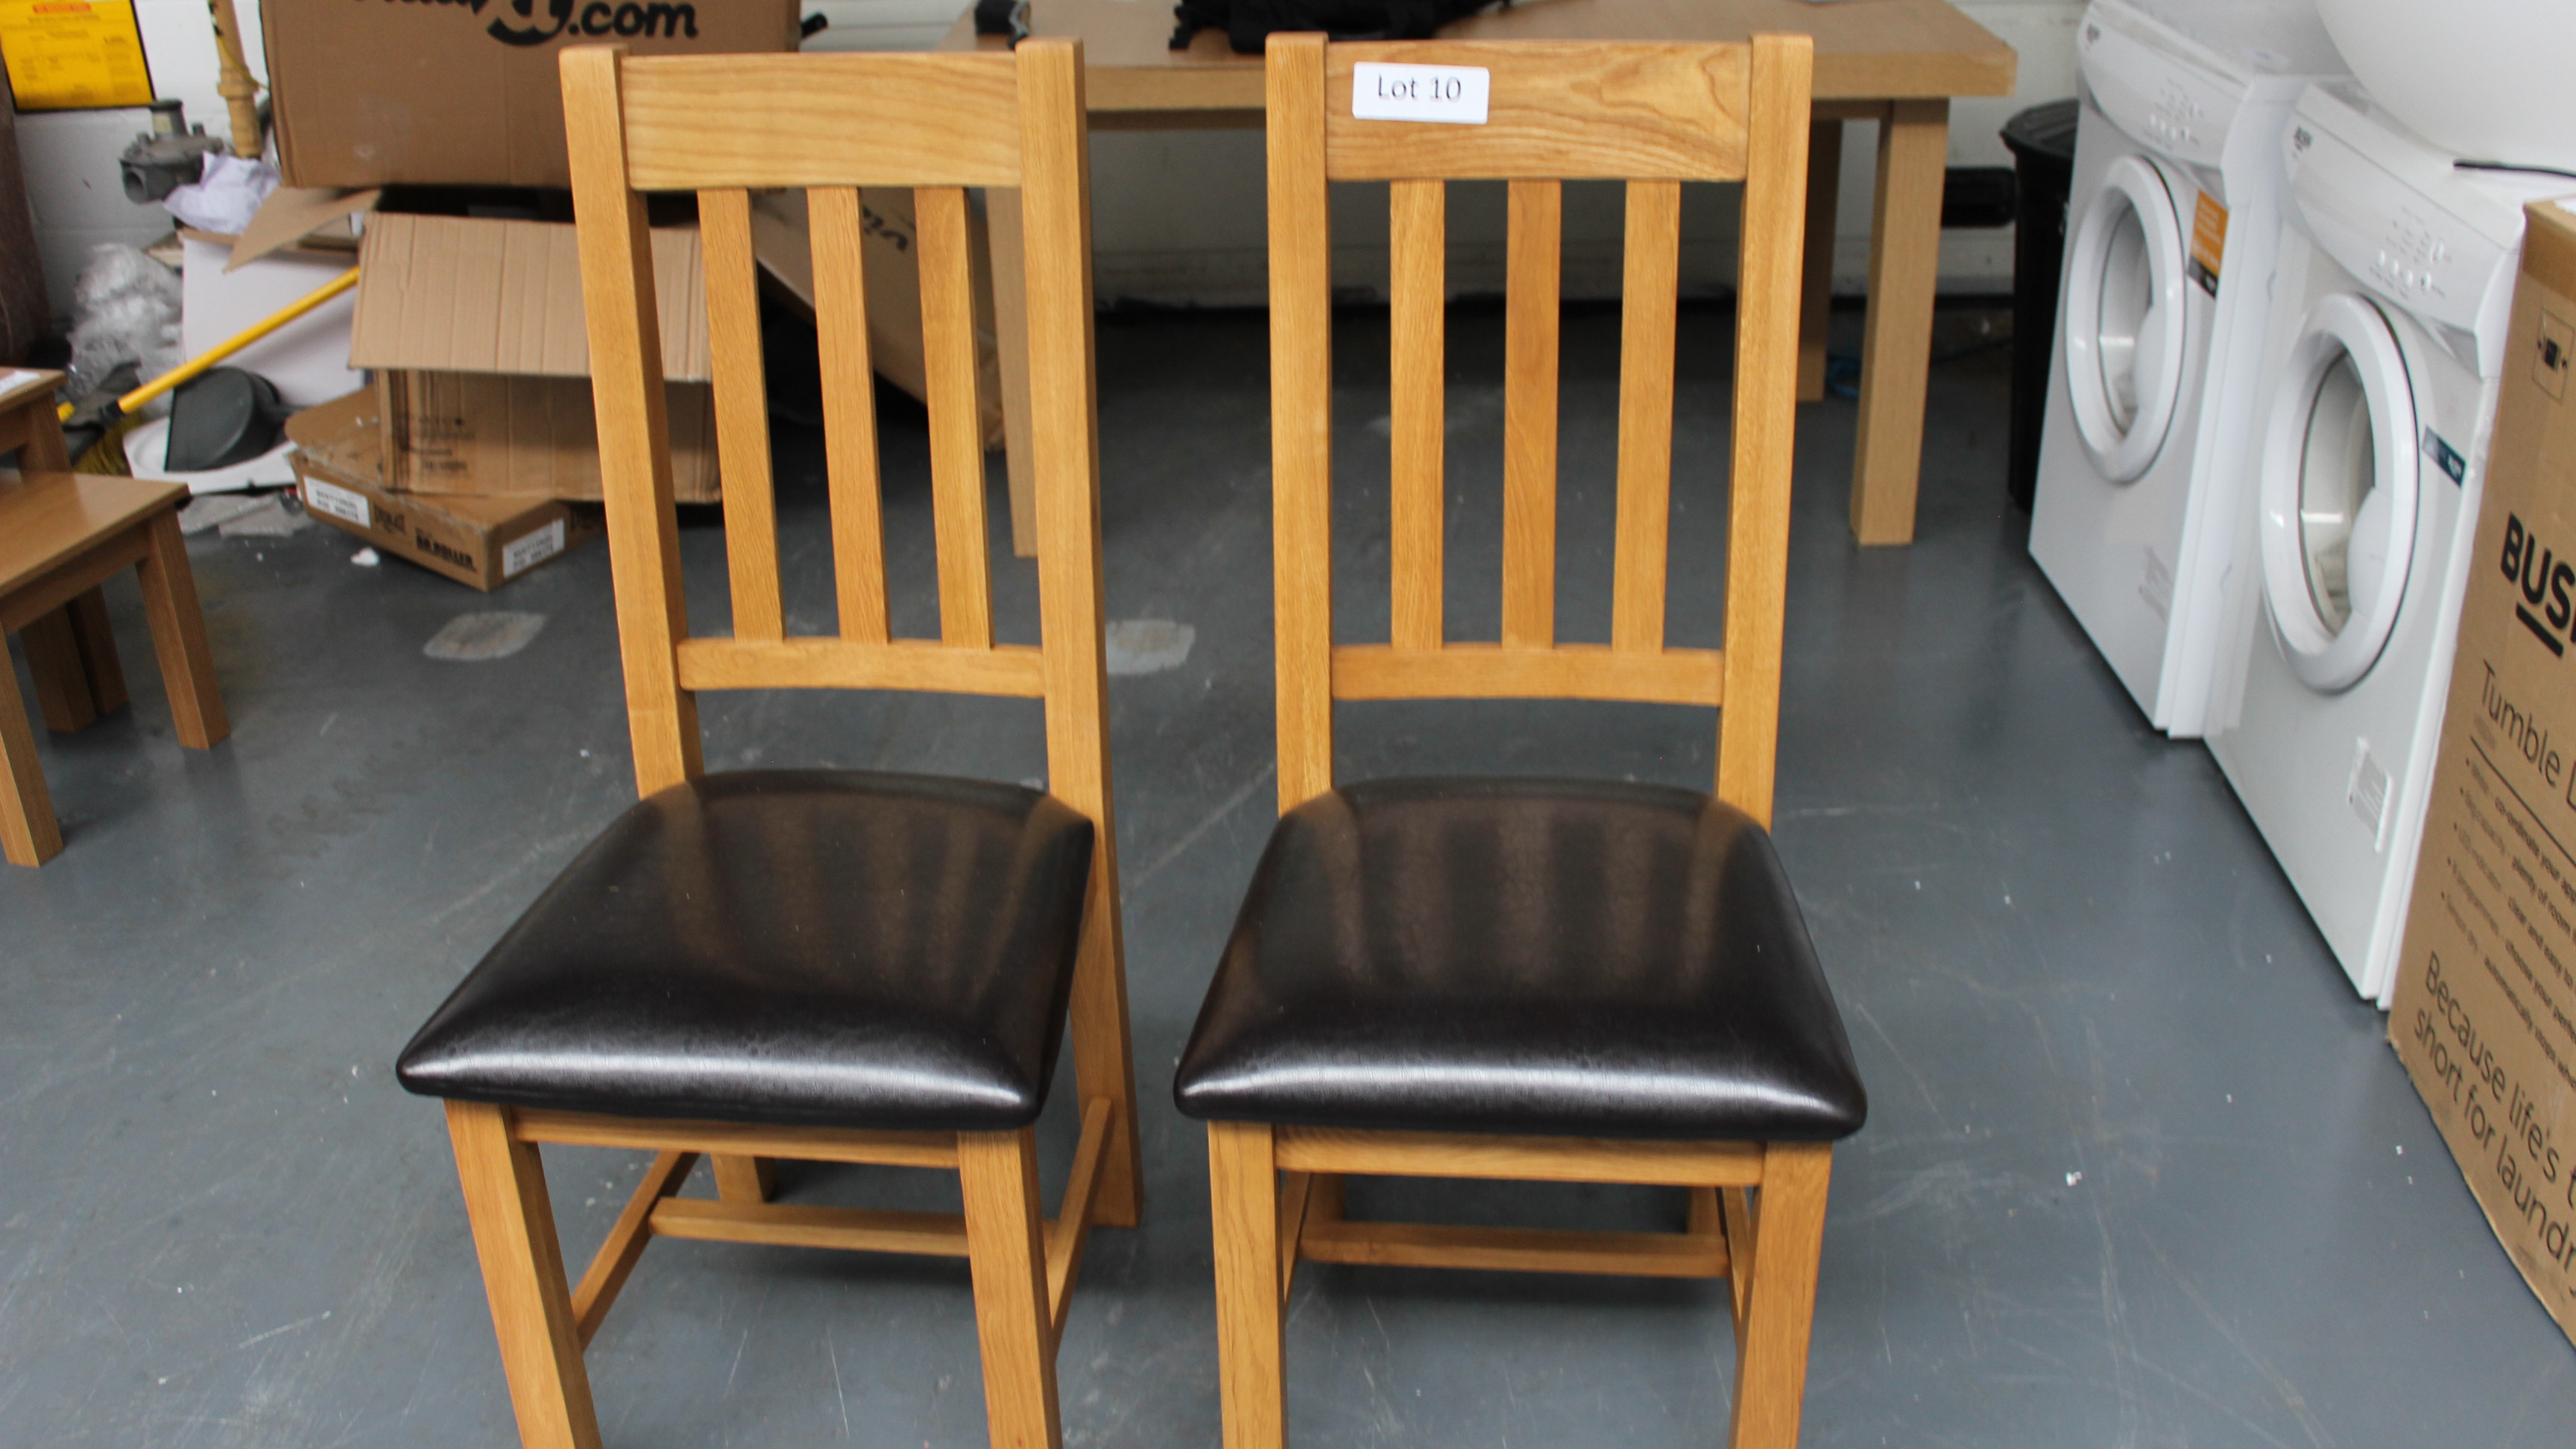 Lot 10 - 2 Julien Bowen Chairs Customer Returns